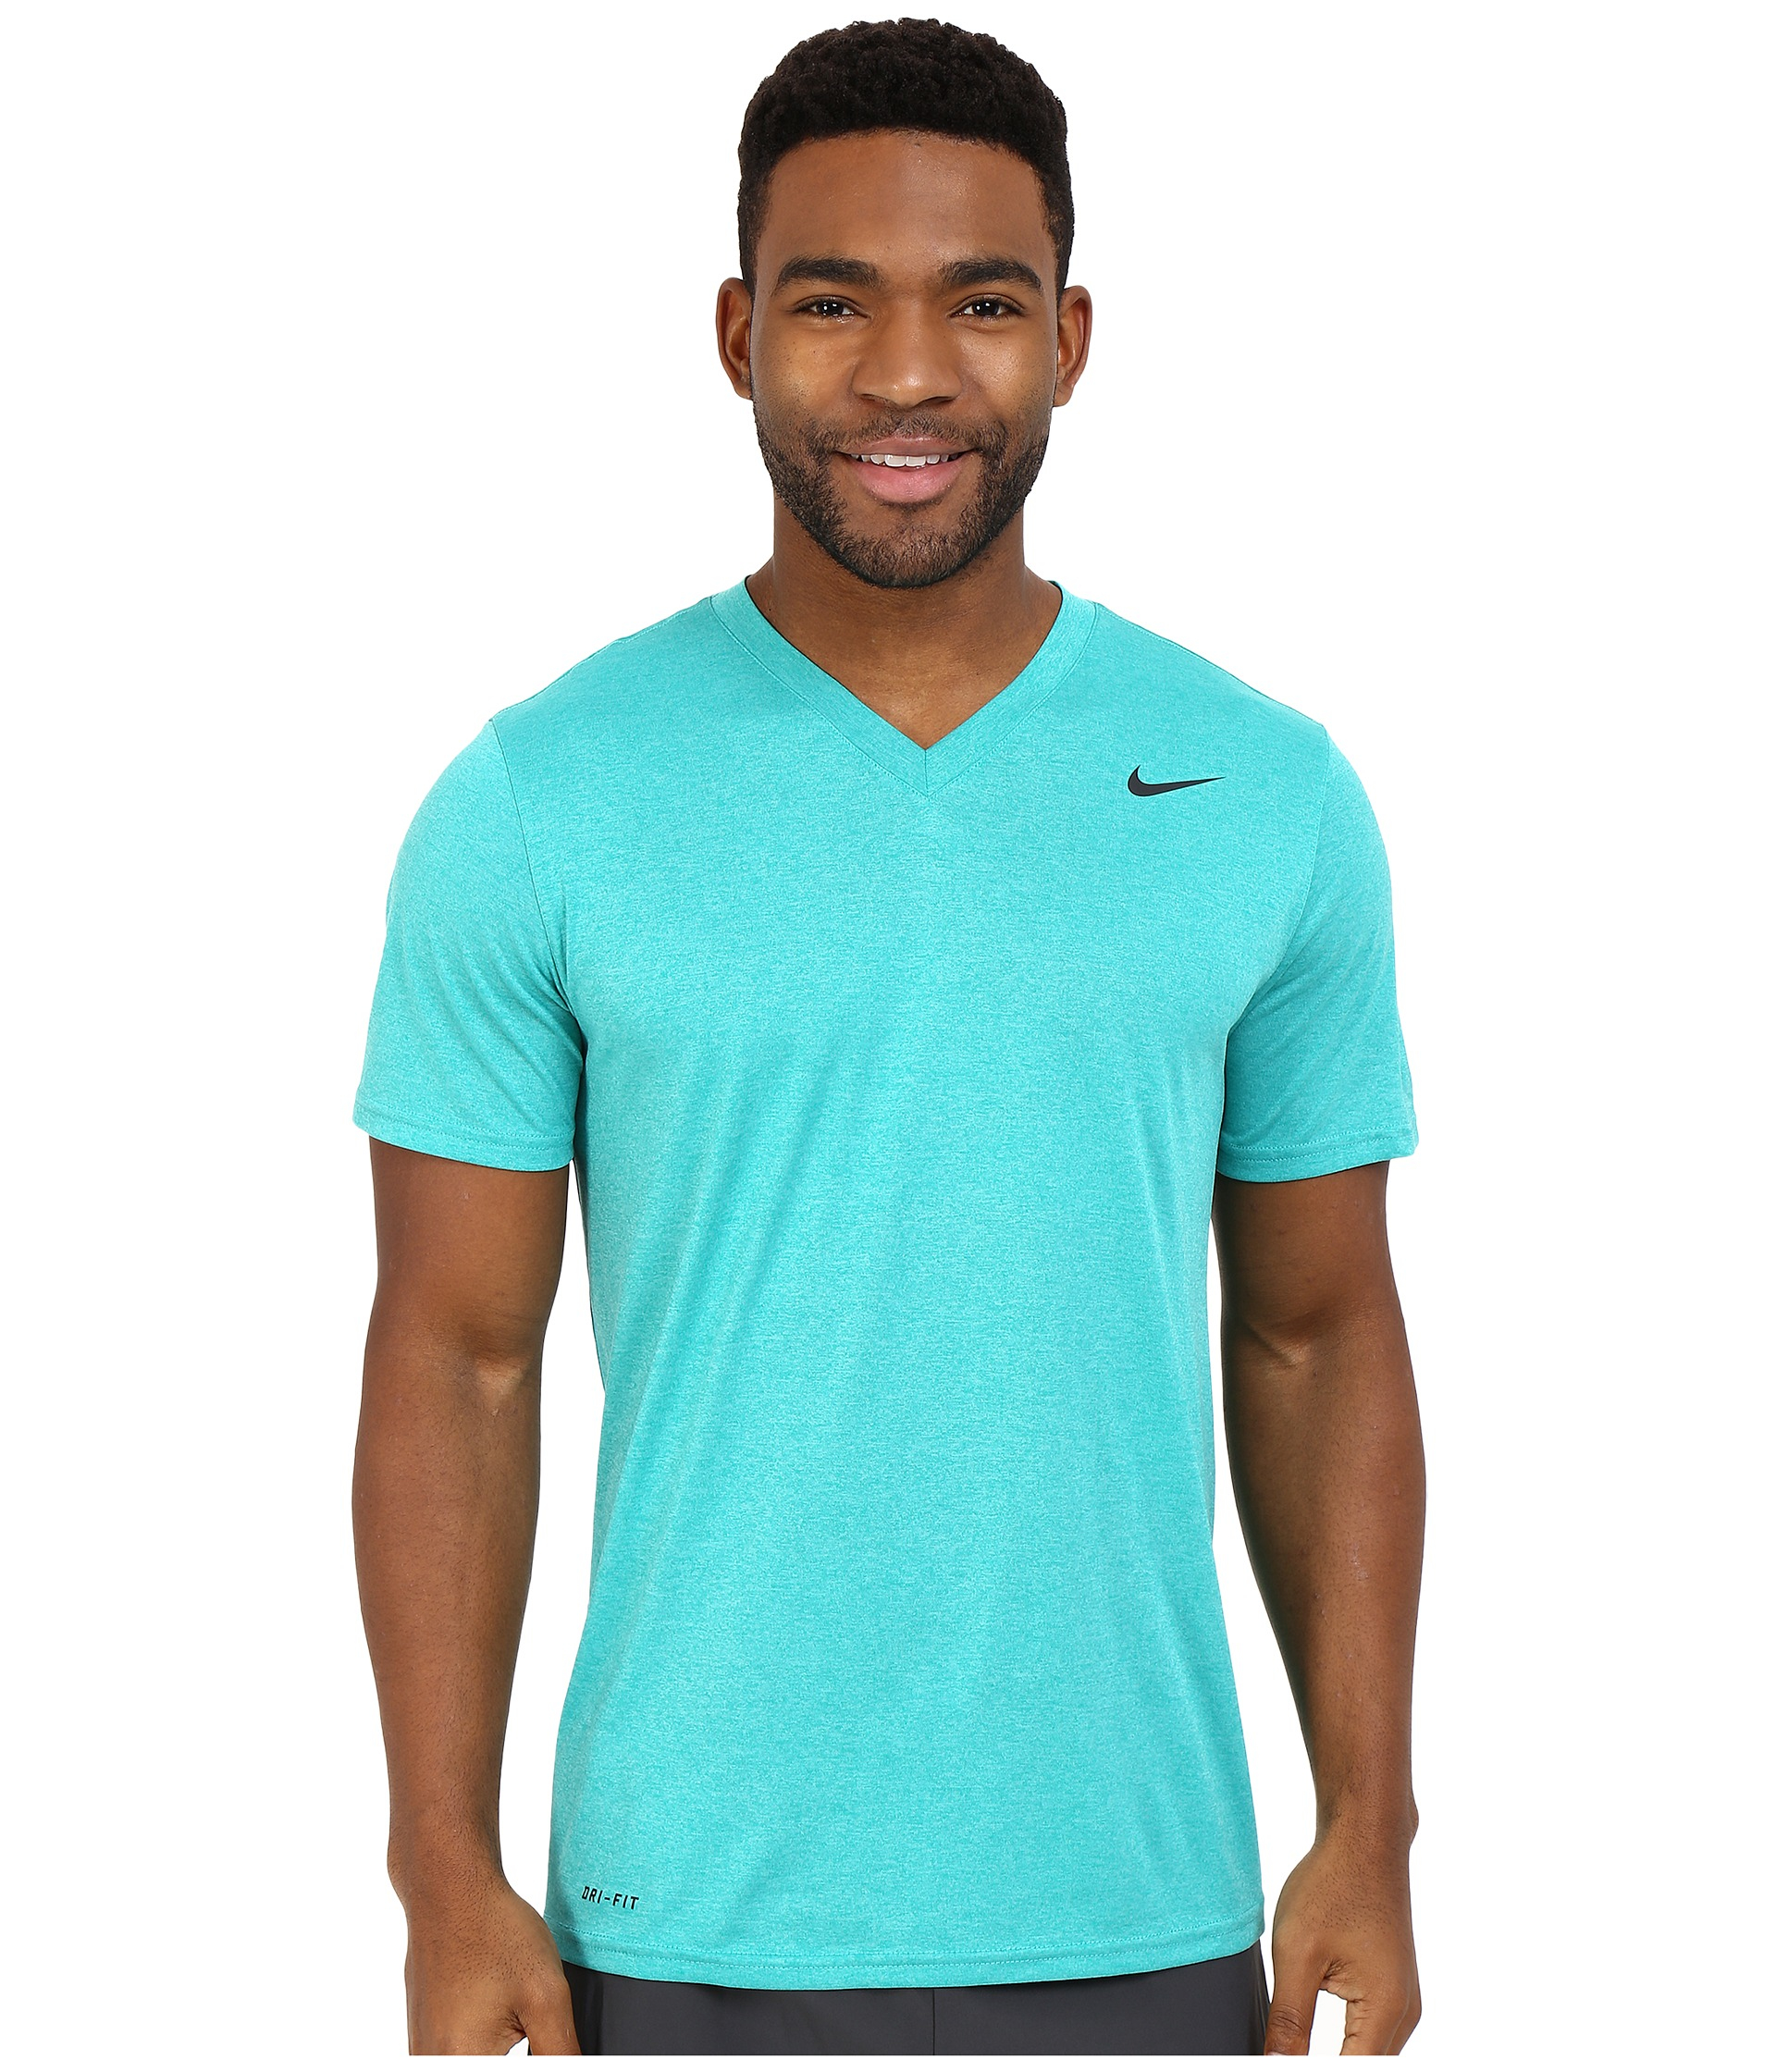 c1ab6af3 Nike Legend 2.0 Short Sleeve V-neck Tee in Blue for Men - Lyst